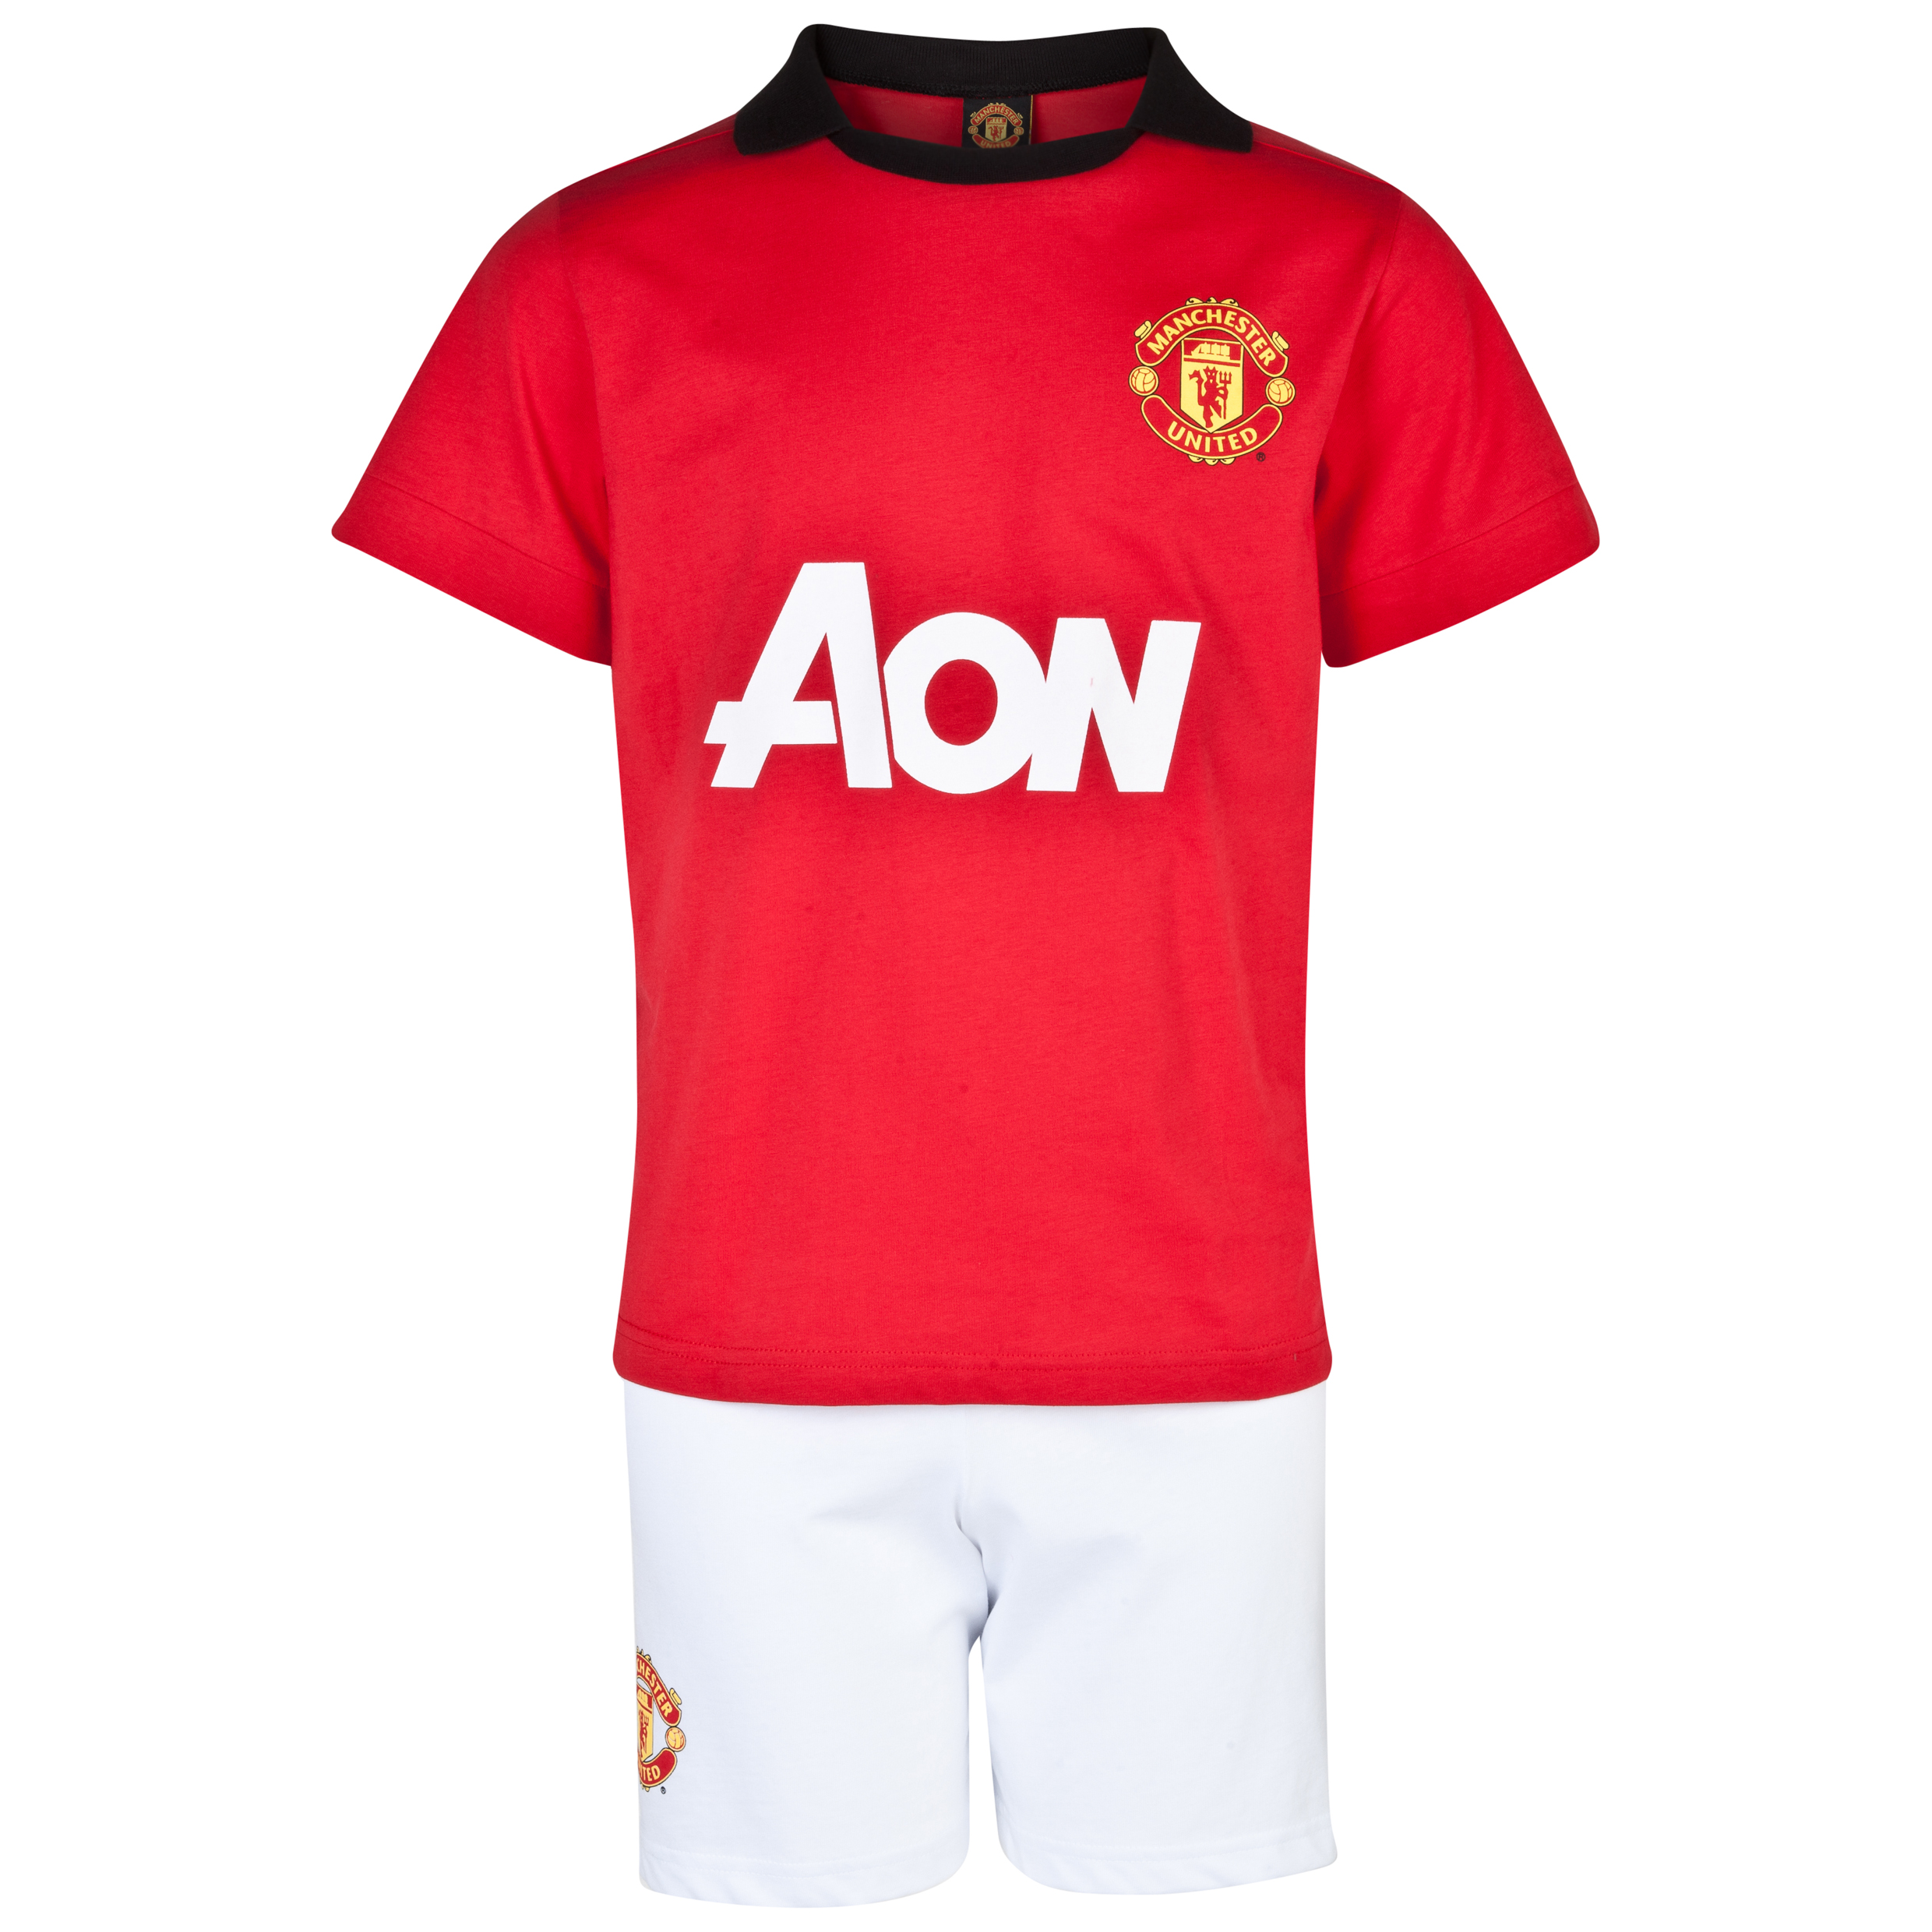 Manchester United Home Kit Pyjamas - Boys Red